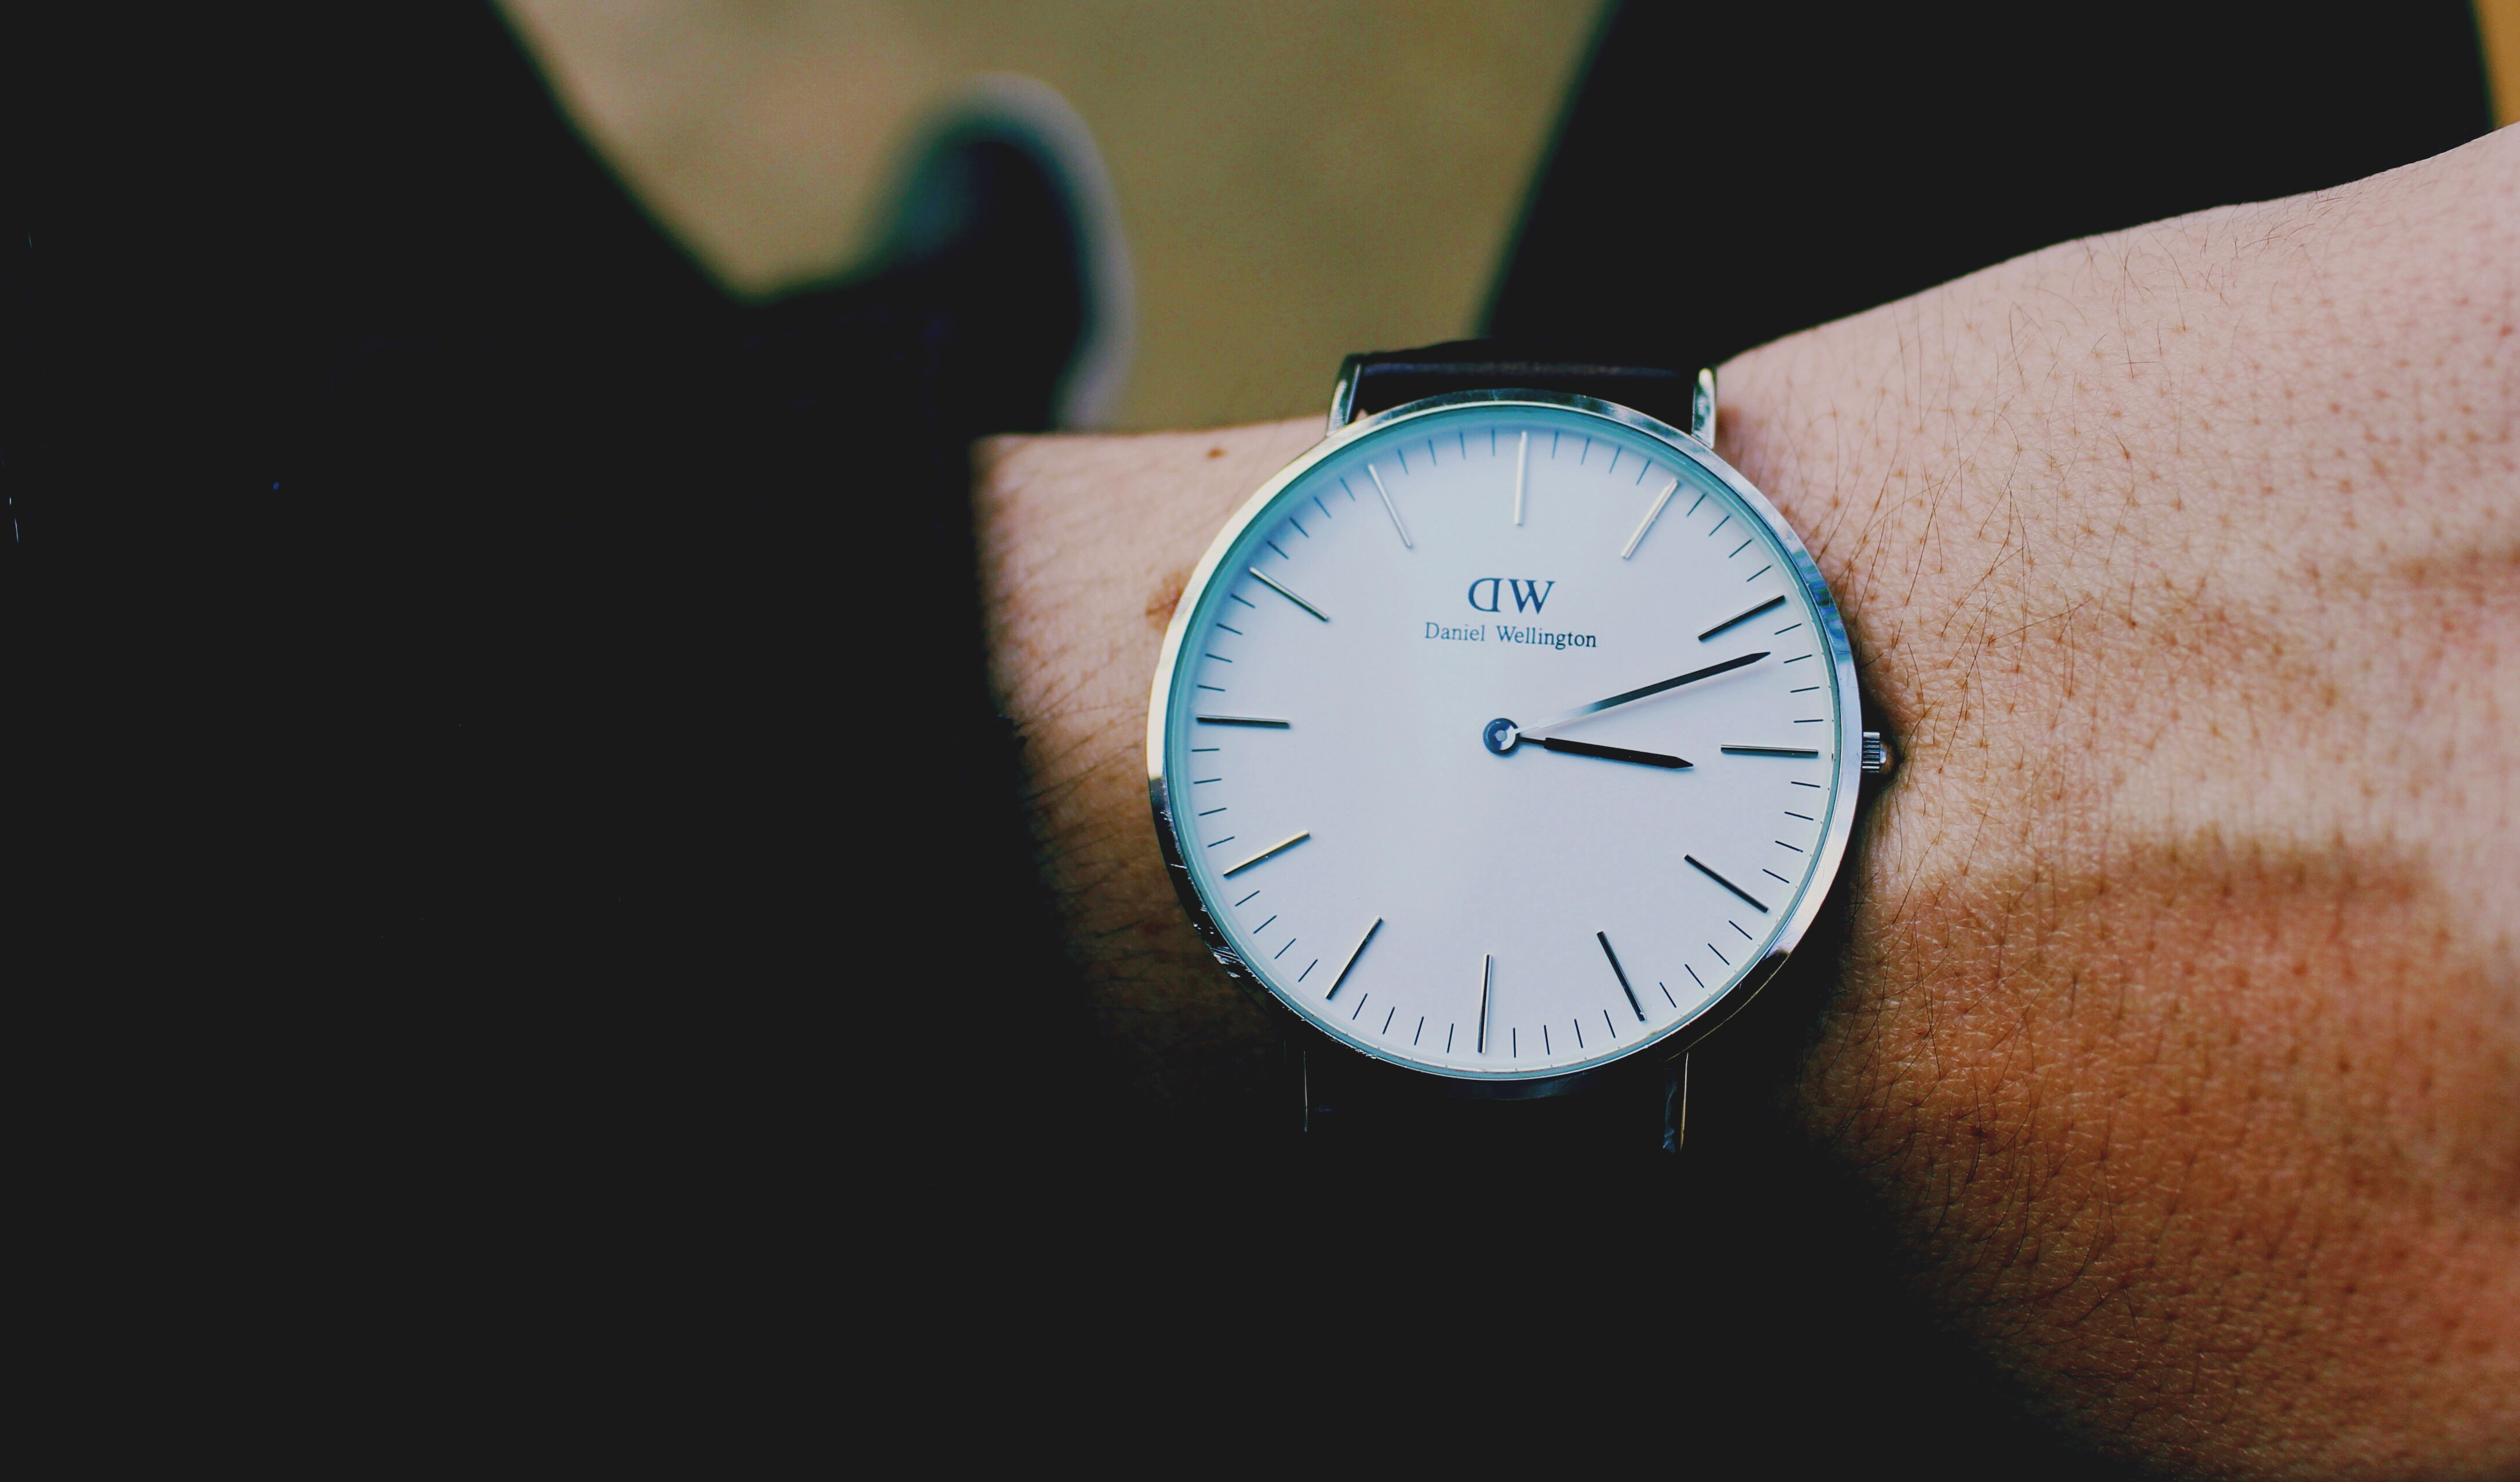 round silver-colored watch time at 3:11